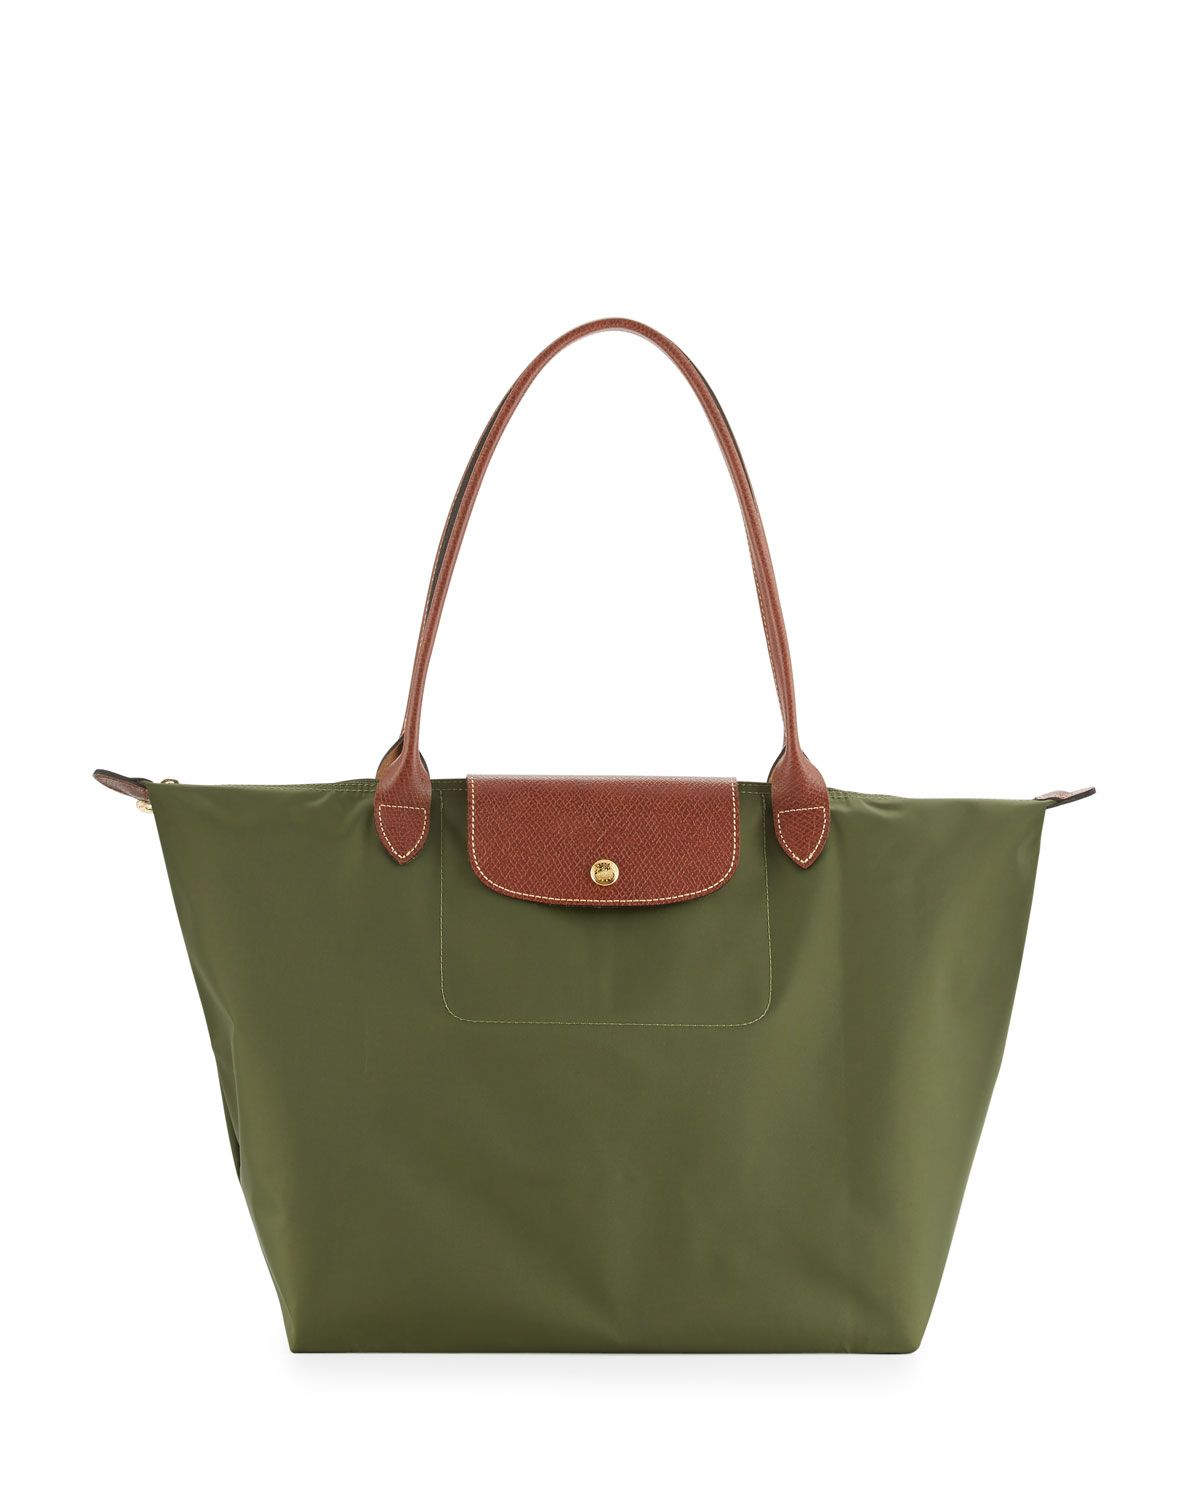 aeb10be73f Le Pliage Large Shoulder Tote Bag, Khaki Birthday List, Longchamp, Dream  Closets,